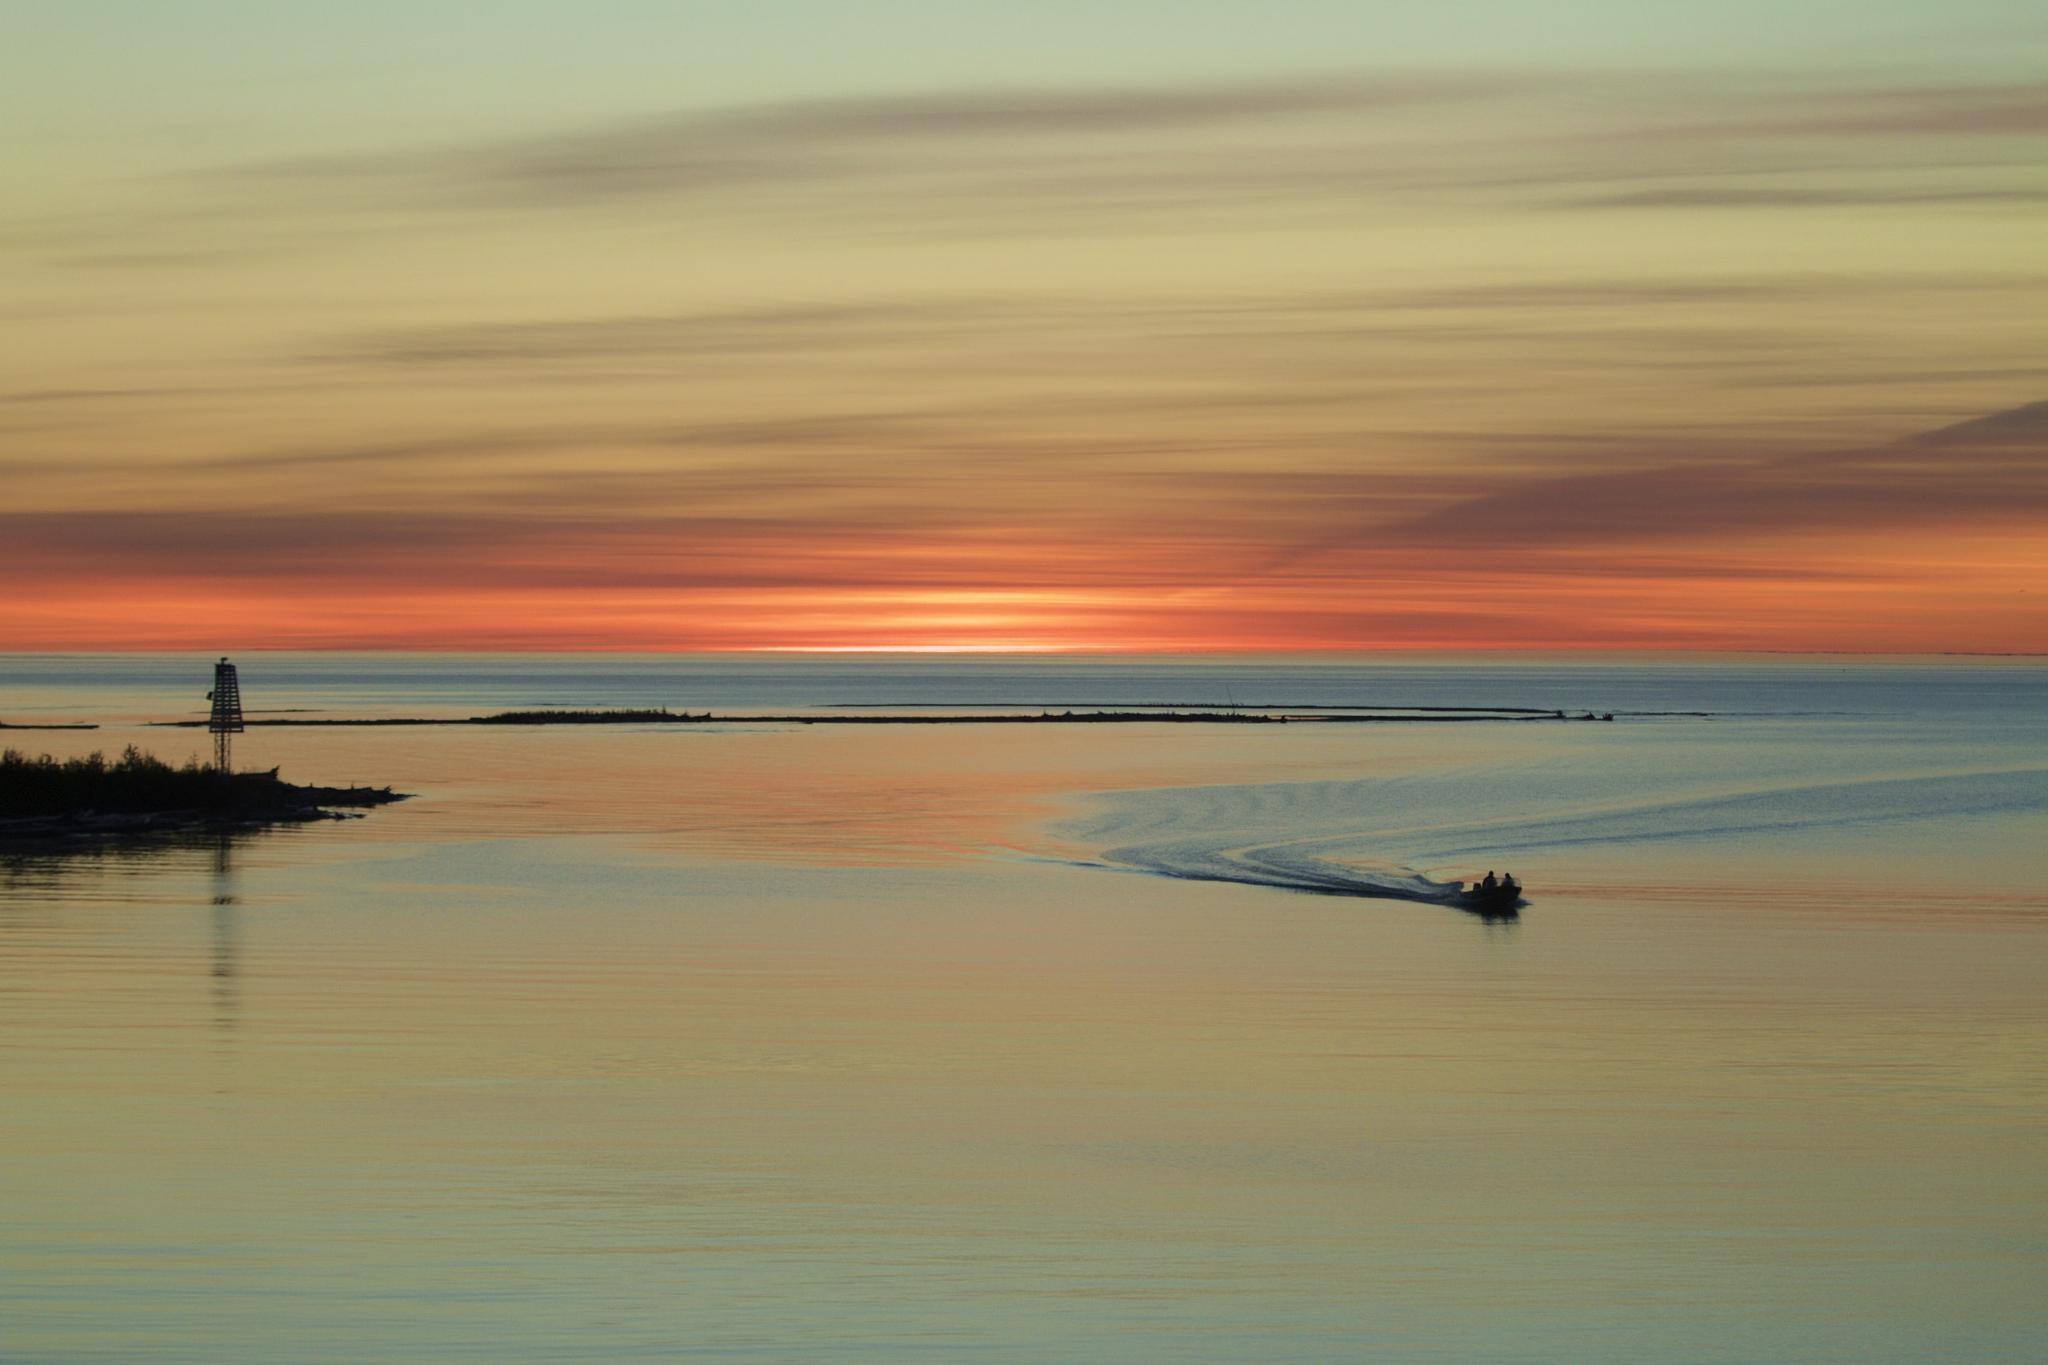 Boating under the Northern evening sky by Marilyn Marshall